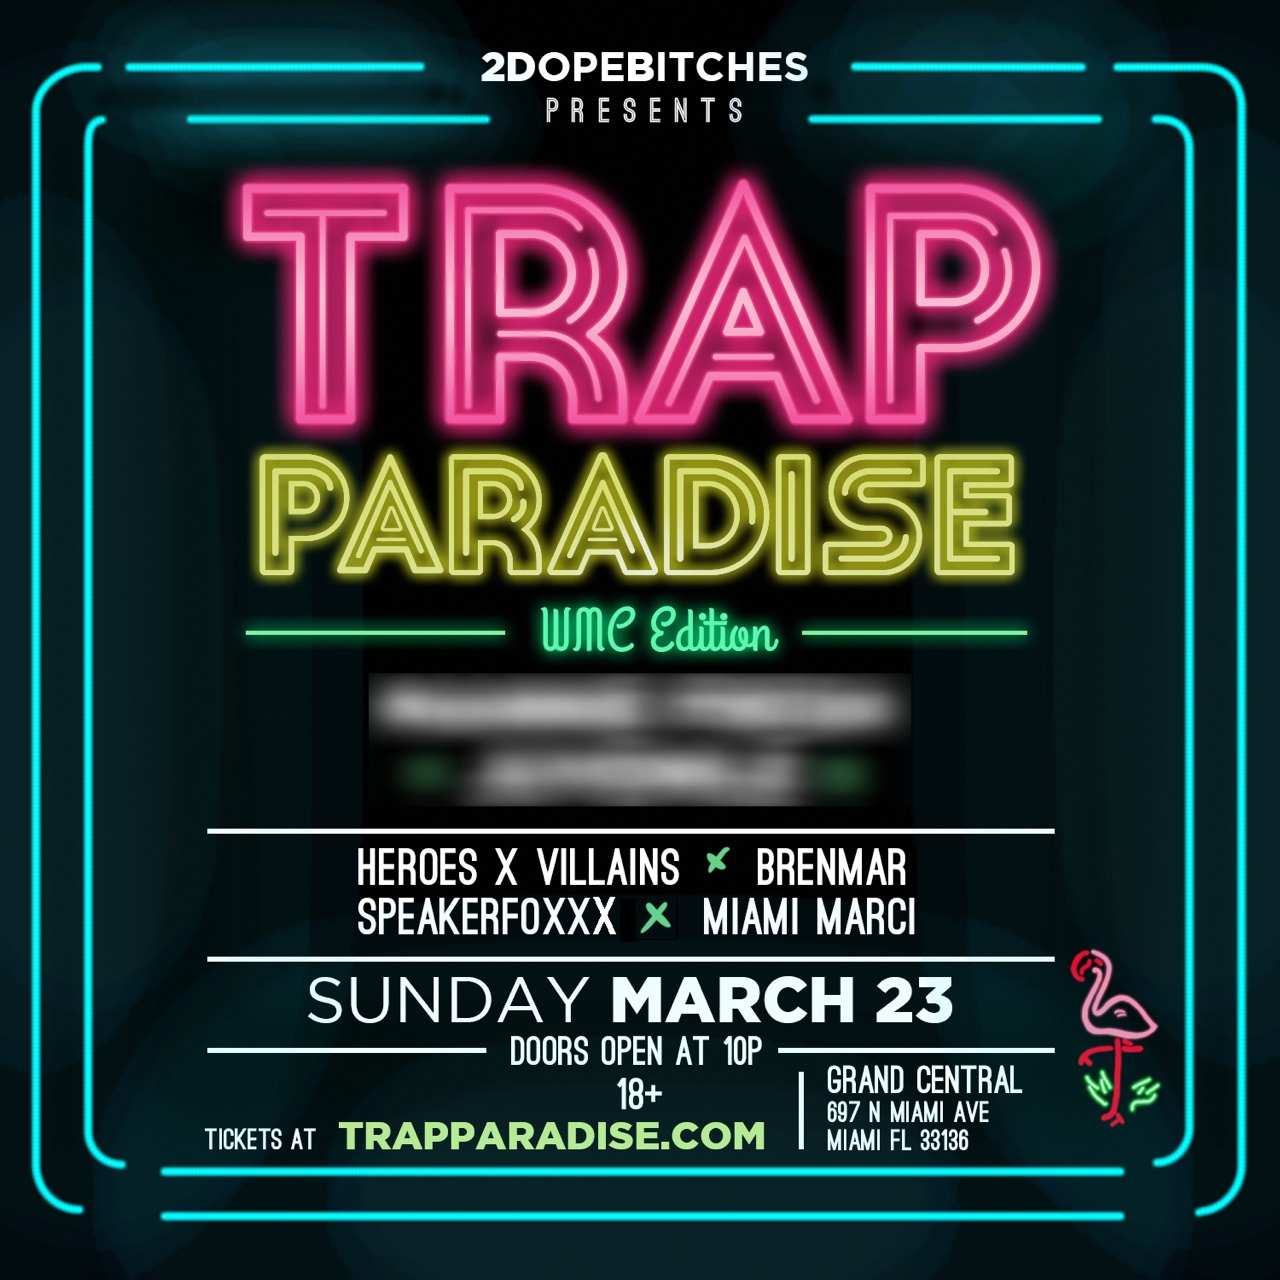 Once again, it's back on in Miami. I'm so excited to have been a part of developing and bringing this awesome new wave to my hometown, and with the best minds doing things right now. Brenmar, SPEAKERFOXXX, Heroes and Villains, alongside myself and very special guests to be announced. The 2 DOPE BITCHES present Trap Paradise 2014. The legendary Grand Central. Tickets available at TrapParadise.com. #TrapParadiseIsBack